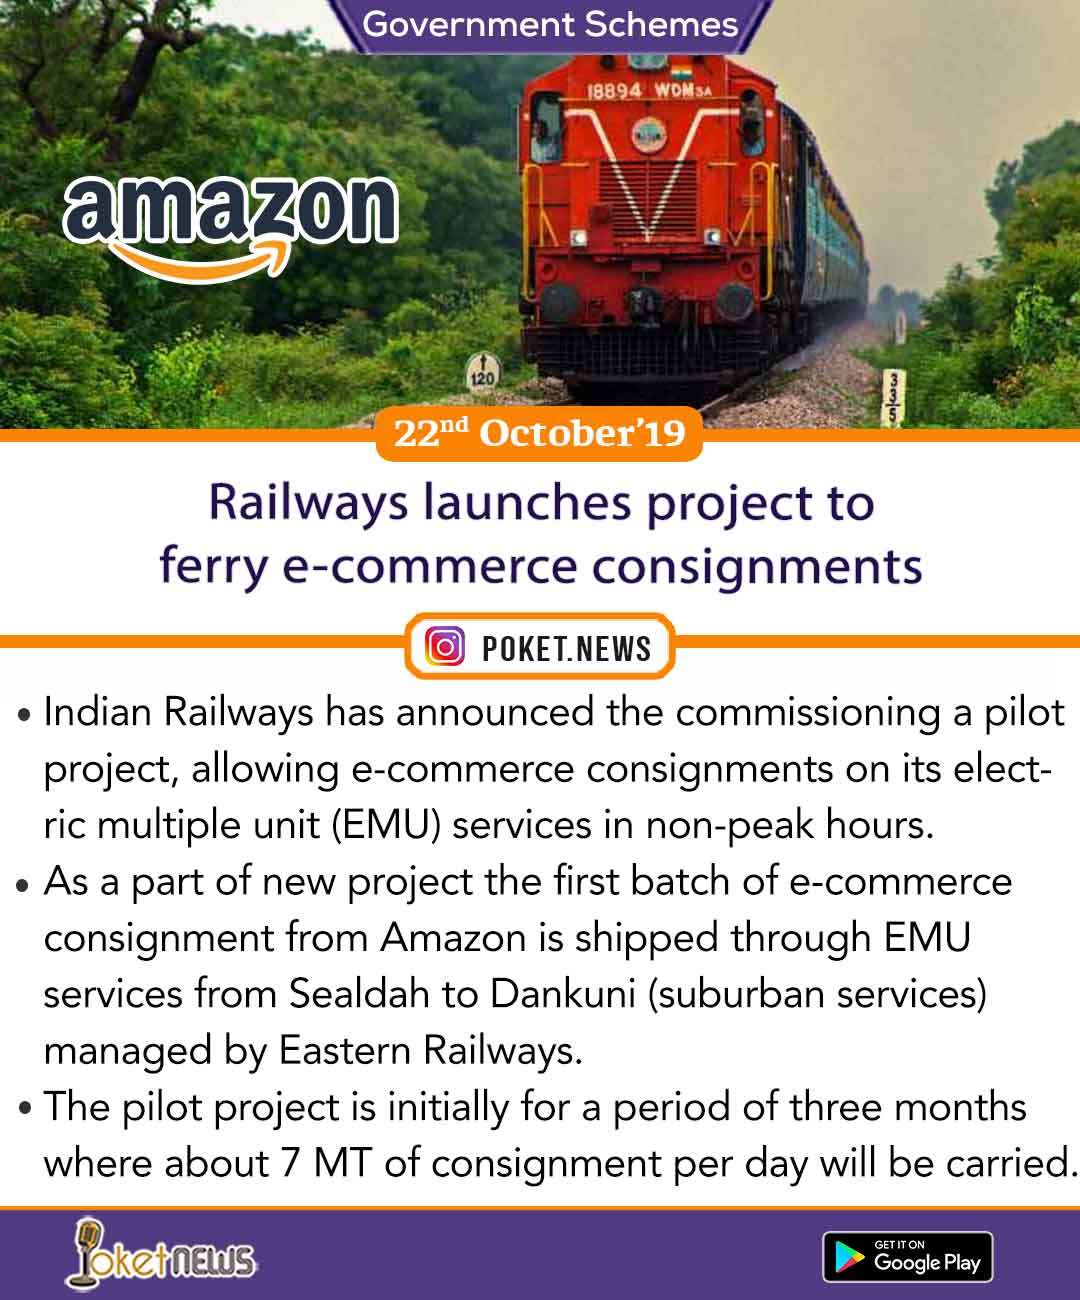 Railways launches project to ferry e-commerce consignments